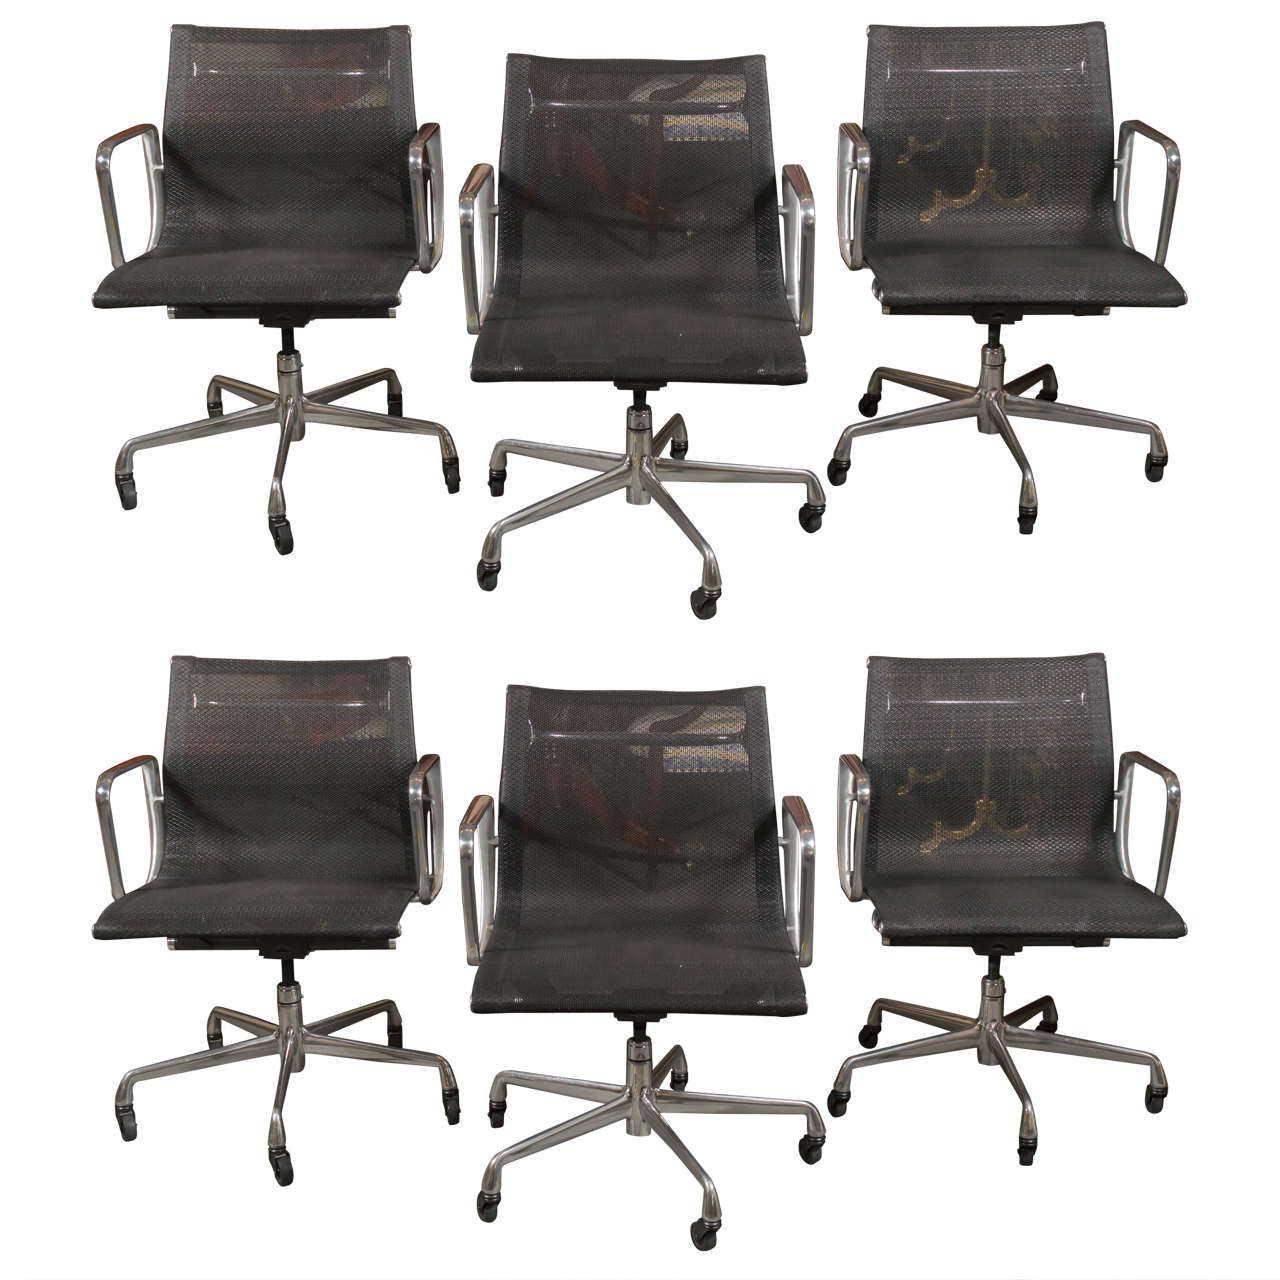 Eames for herman miller aluminum group management chairs for Herman miller eames aluminum group management chair